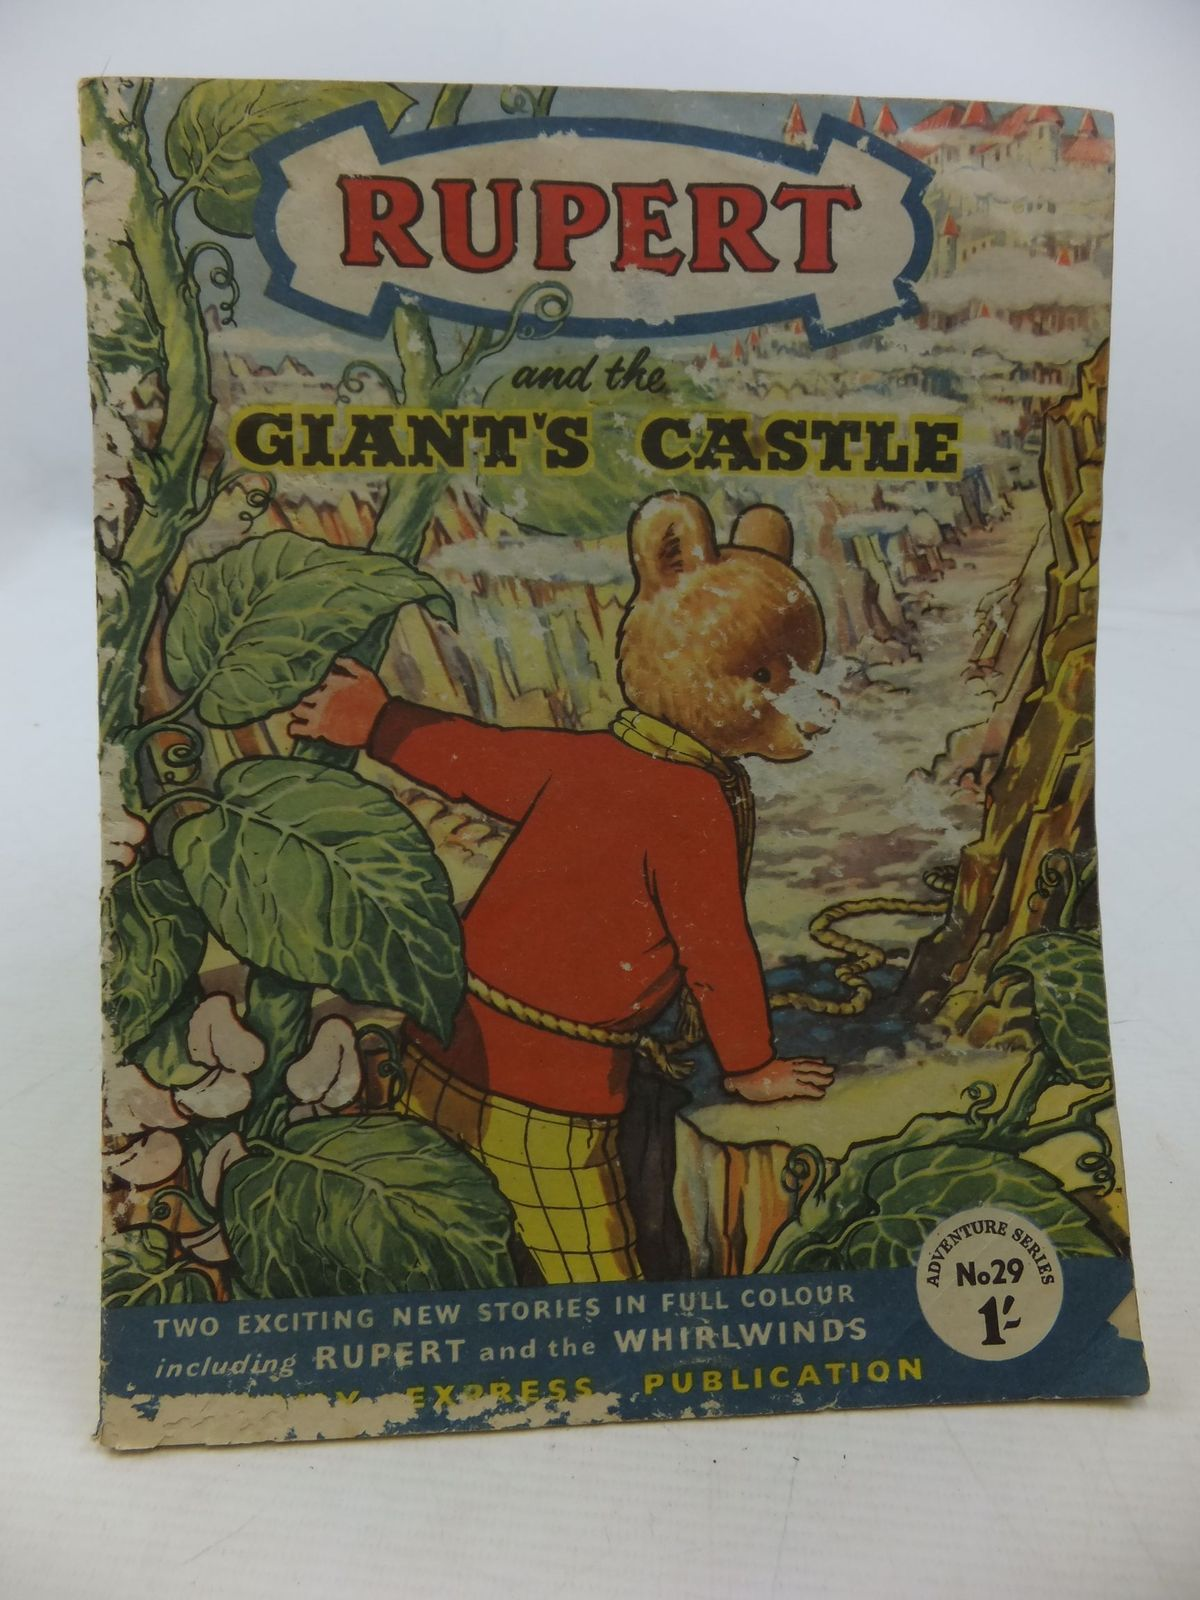 Photo of RUPERT ADVENTURE SERIES No. 29 - RUPERT AND THE GIANT'S CASTLE written by Bestall, Alfred published by Daily Express (STOCK CODE: 2112484)  for sale by Stella & Rose's Books